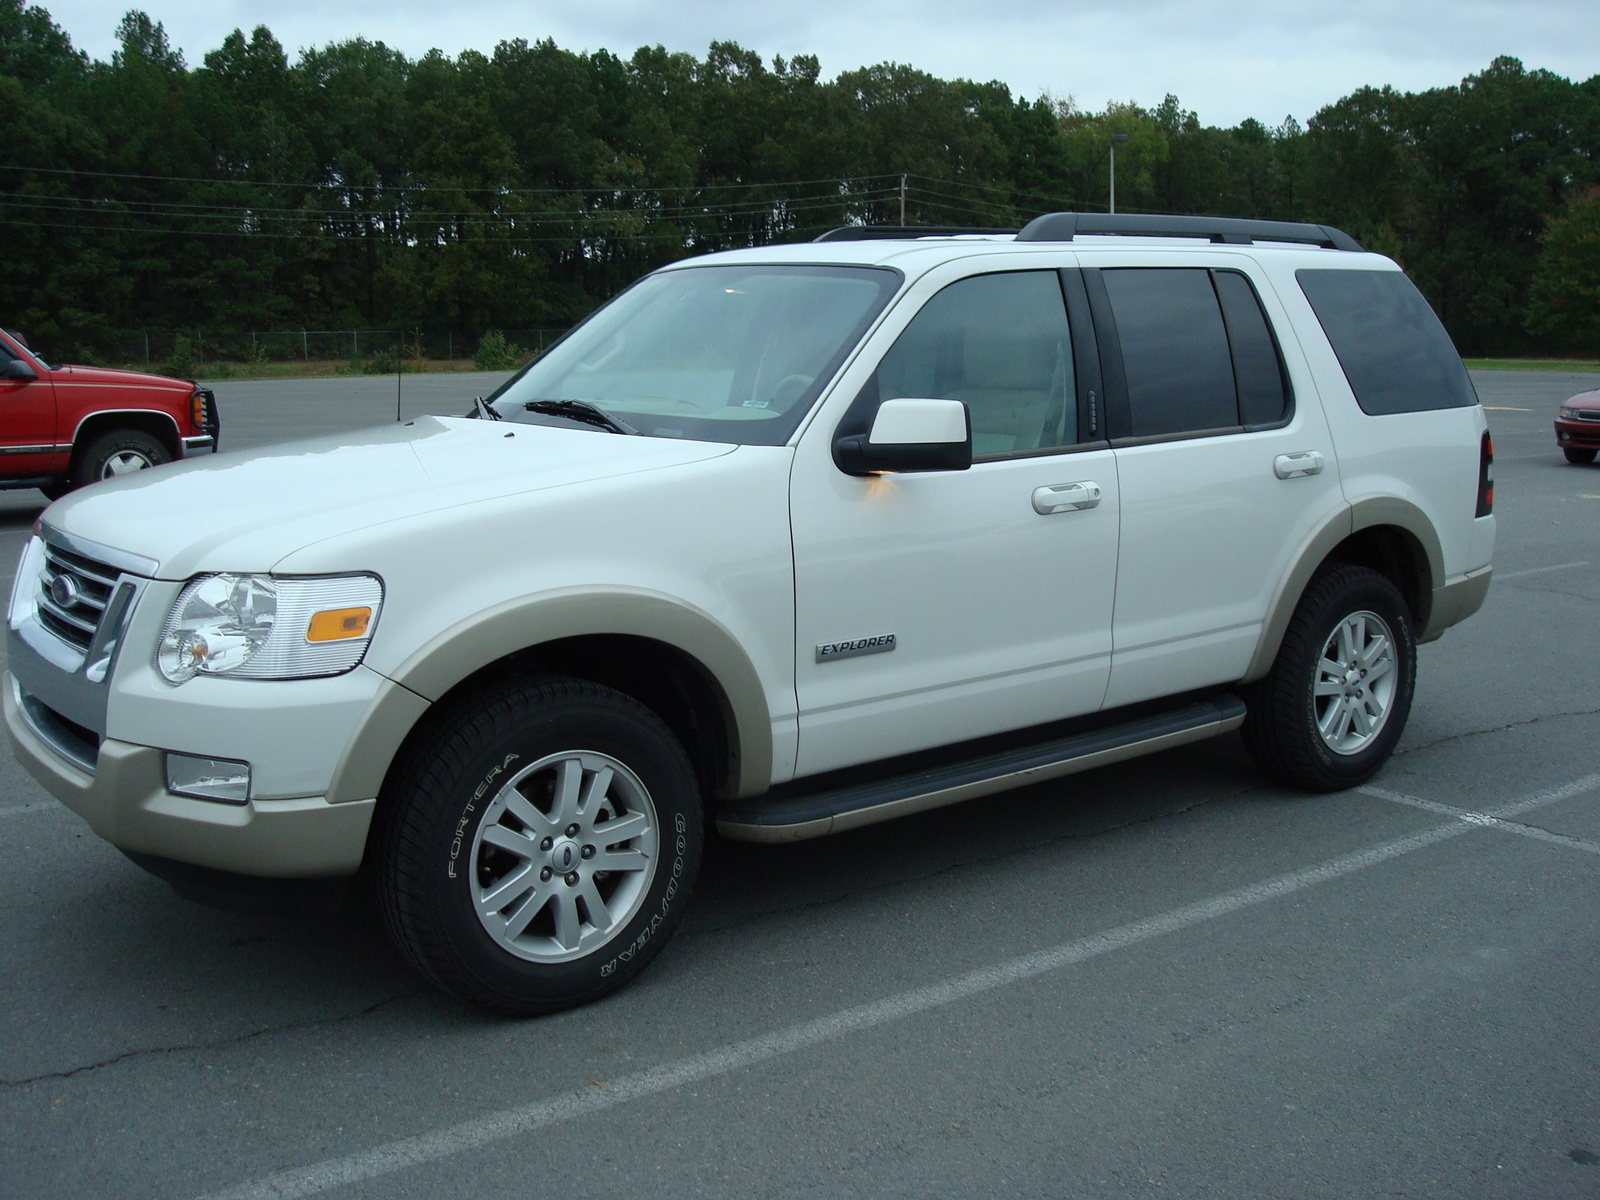 2014 Ford Explorer Xlt Top Car Reviews 2019 2020 2008 Pictures Cargurus